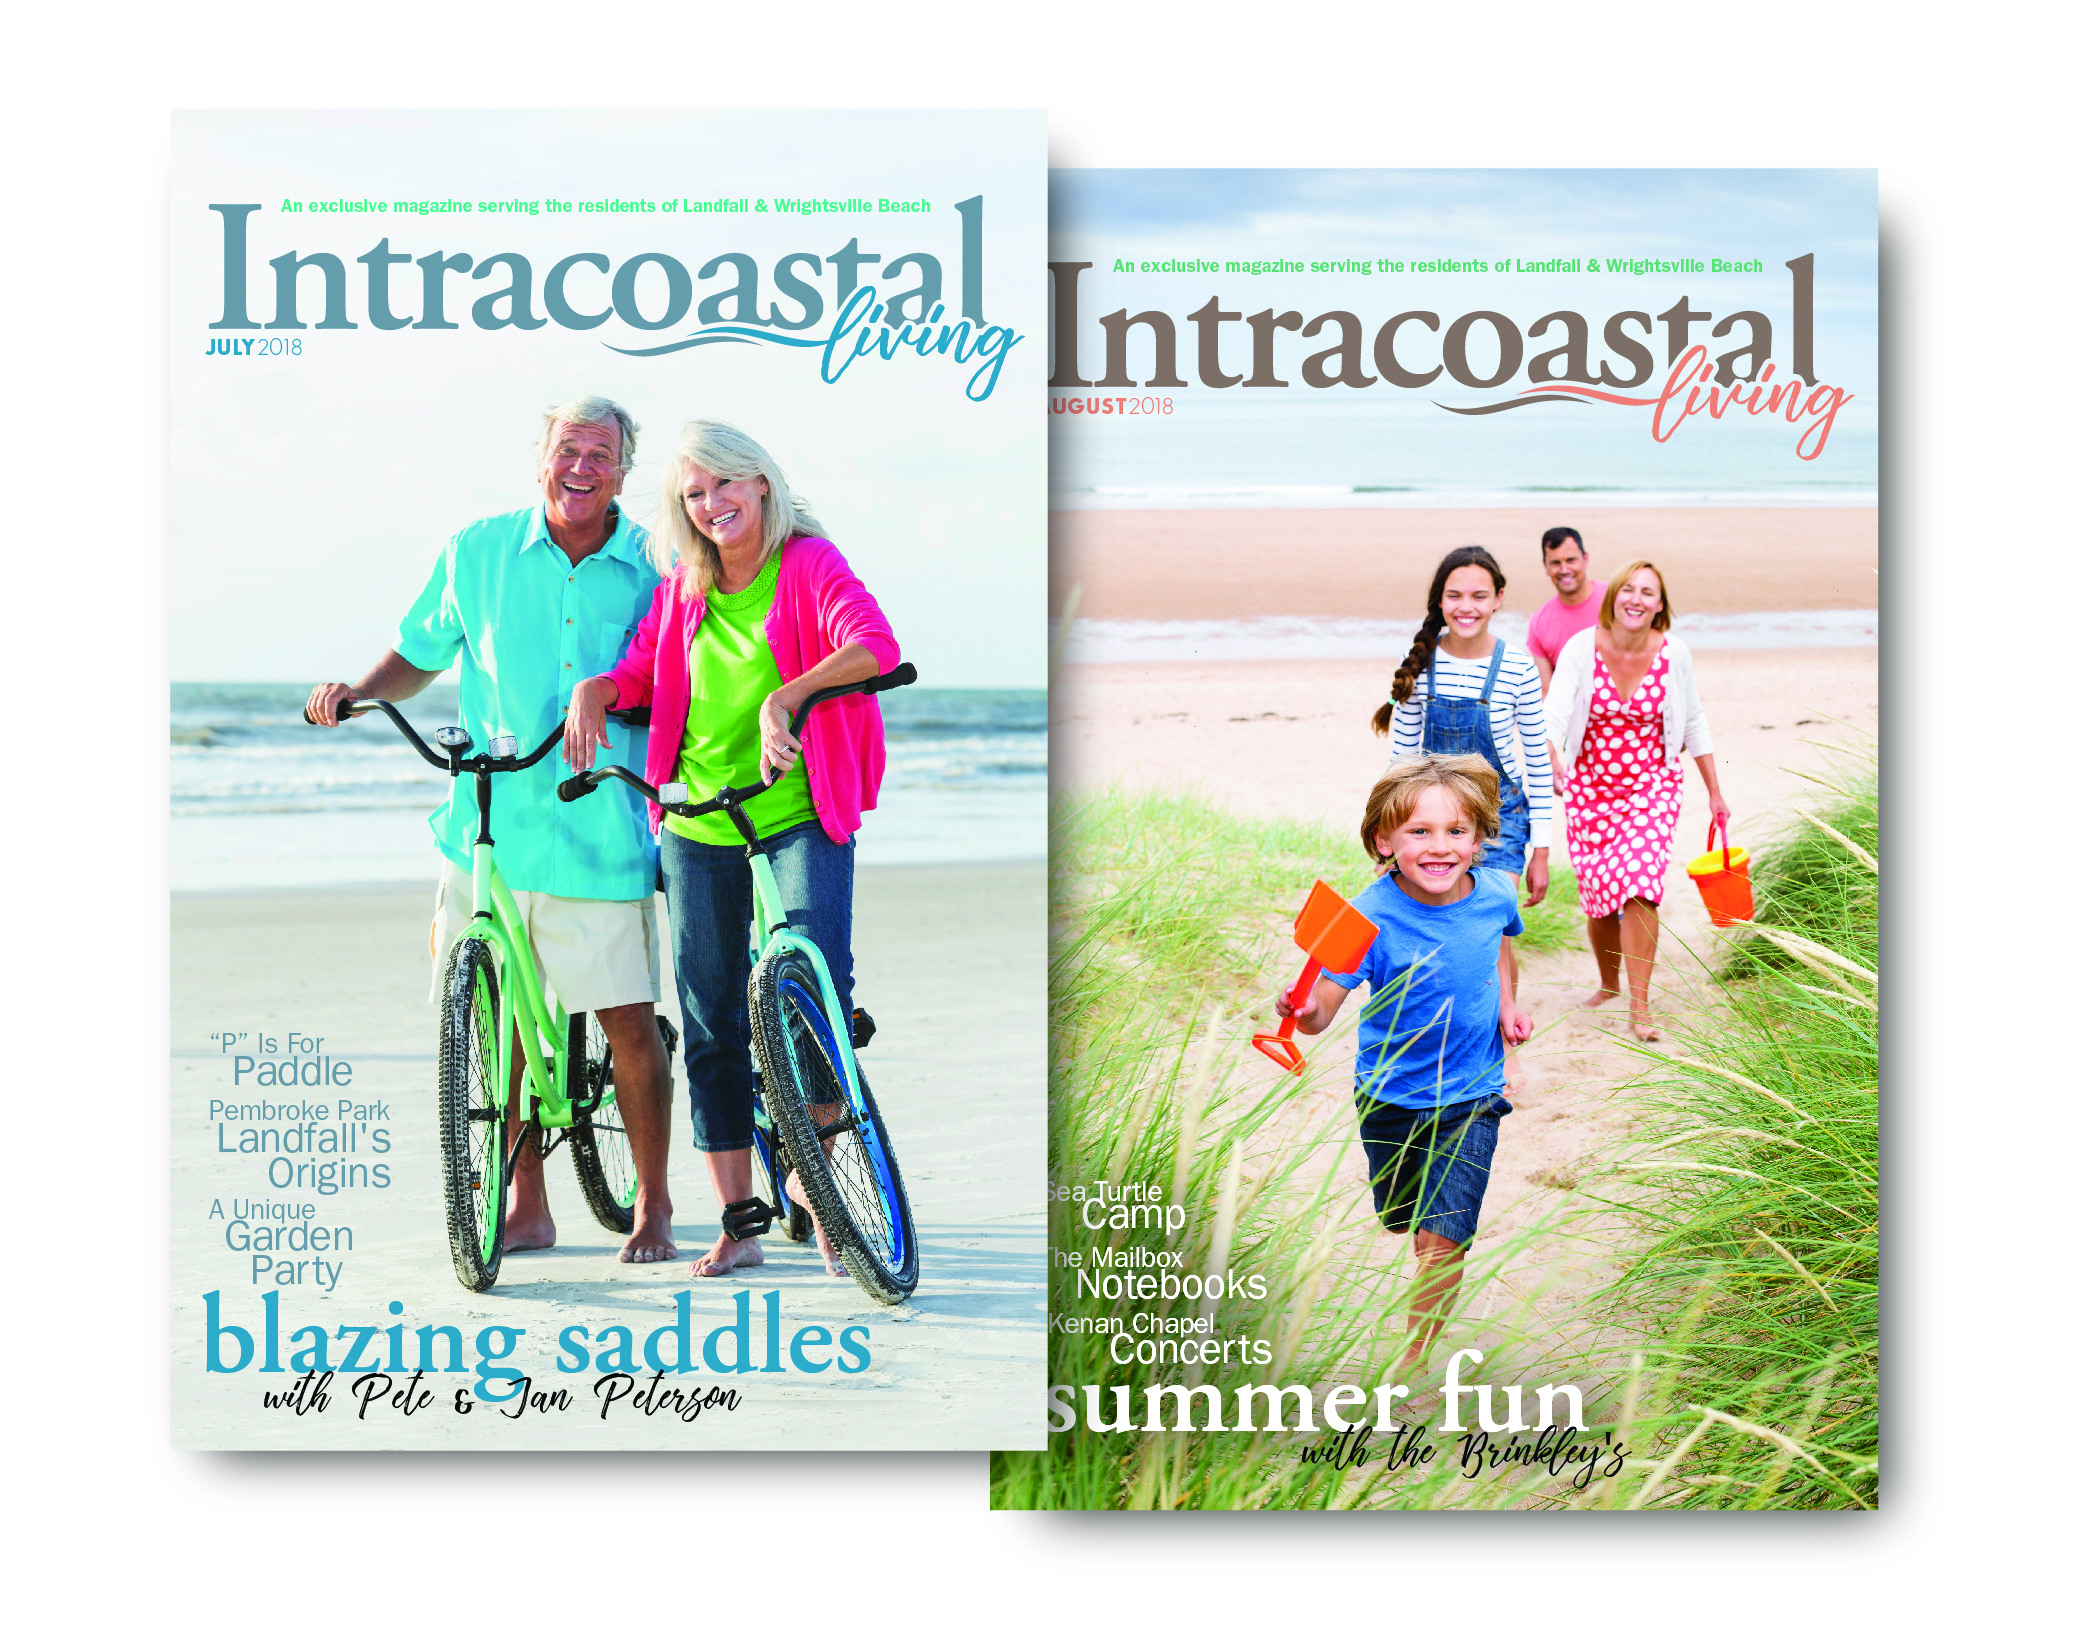 intercoastal_living_mag_spread-01.jpg